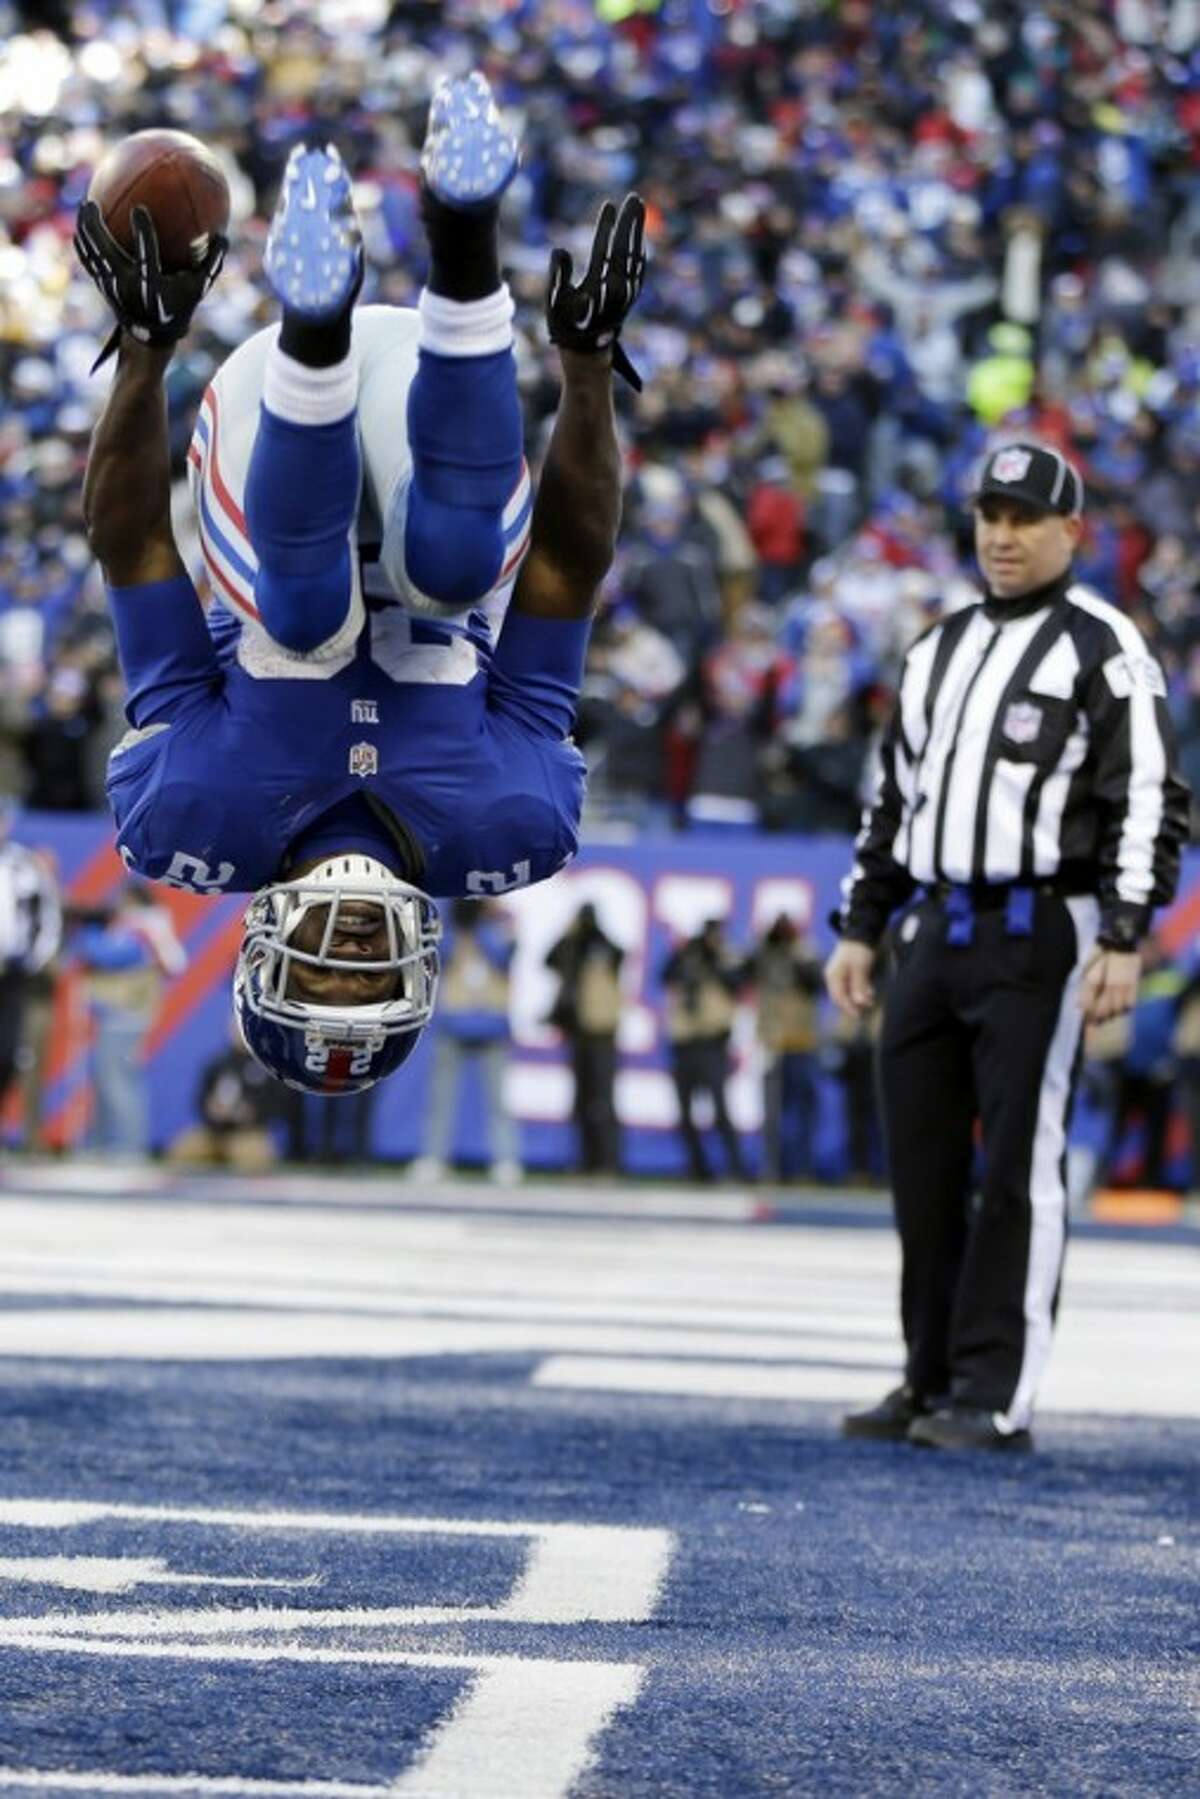 New York Giants running back David Wilson (22) flips while celebrating a touchdown during the first half of an NFL football game against the Philadelphia Eagles, Sunday, Dec. 30, 2012, in East Rutherford, N.J. (AP Photo/Kathy Willens)